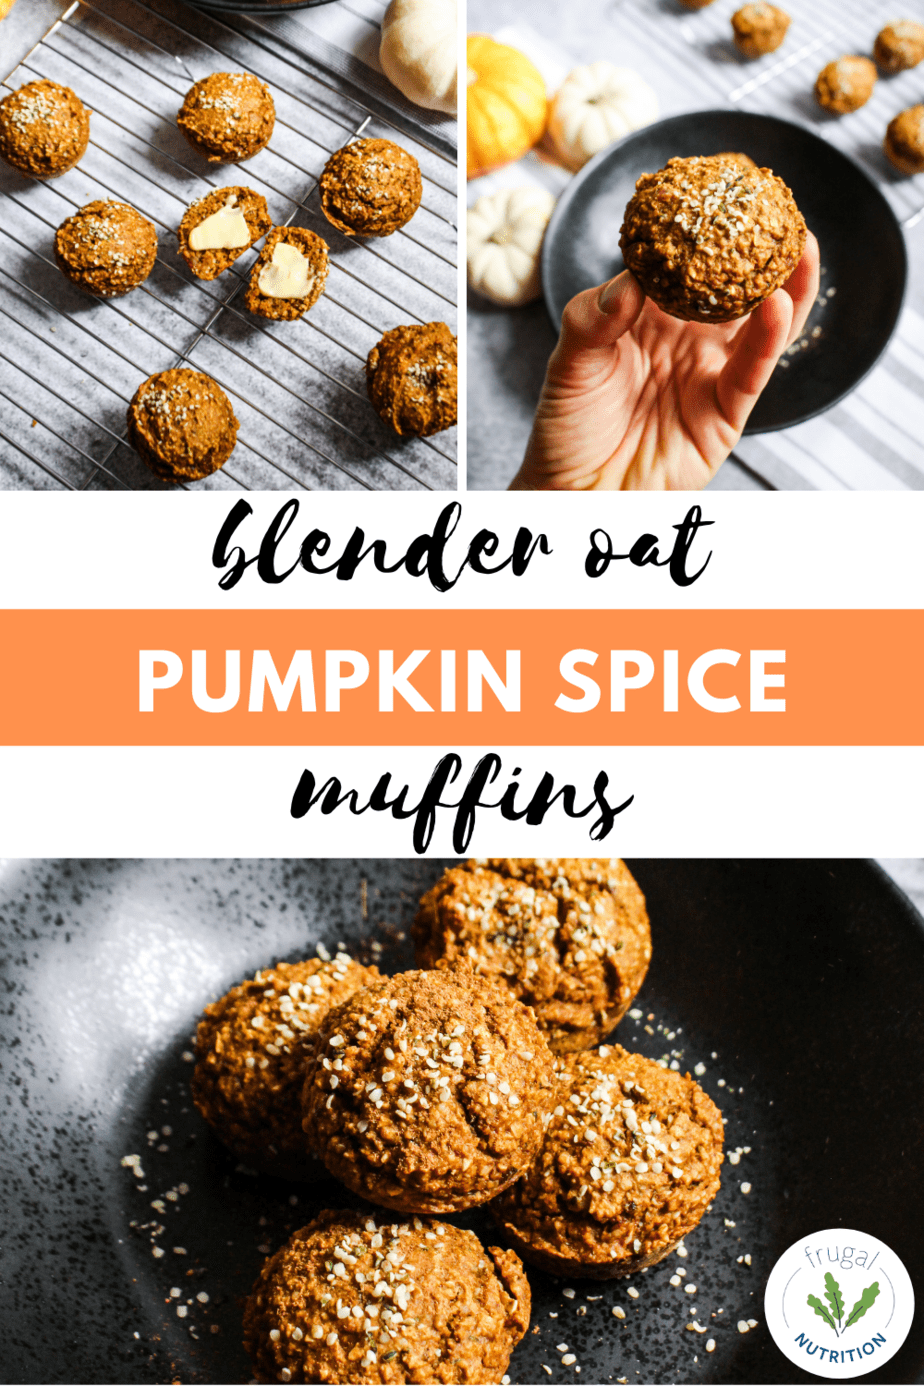 pin of three images of pumpkin spice blender oat muffins